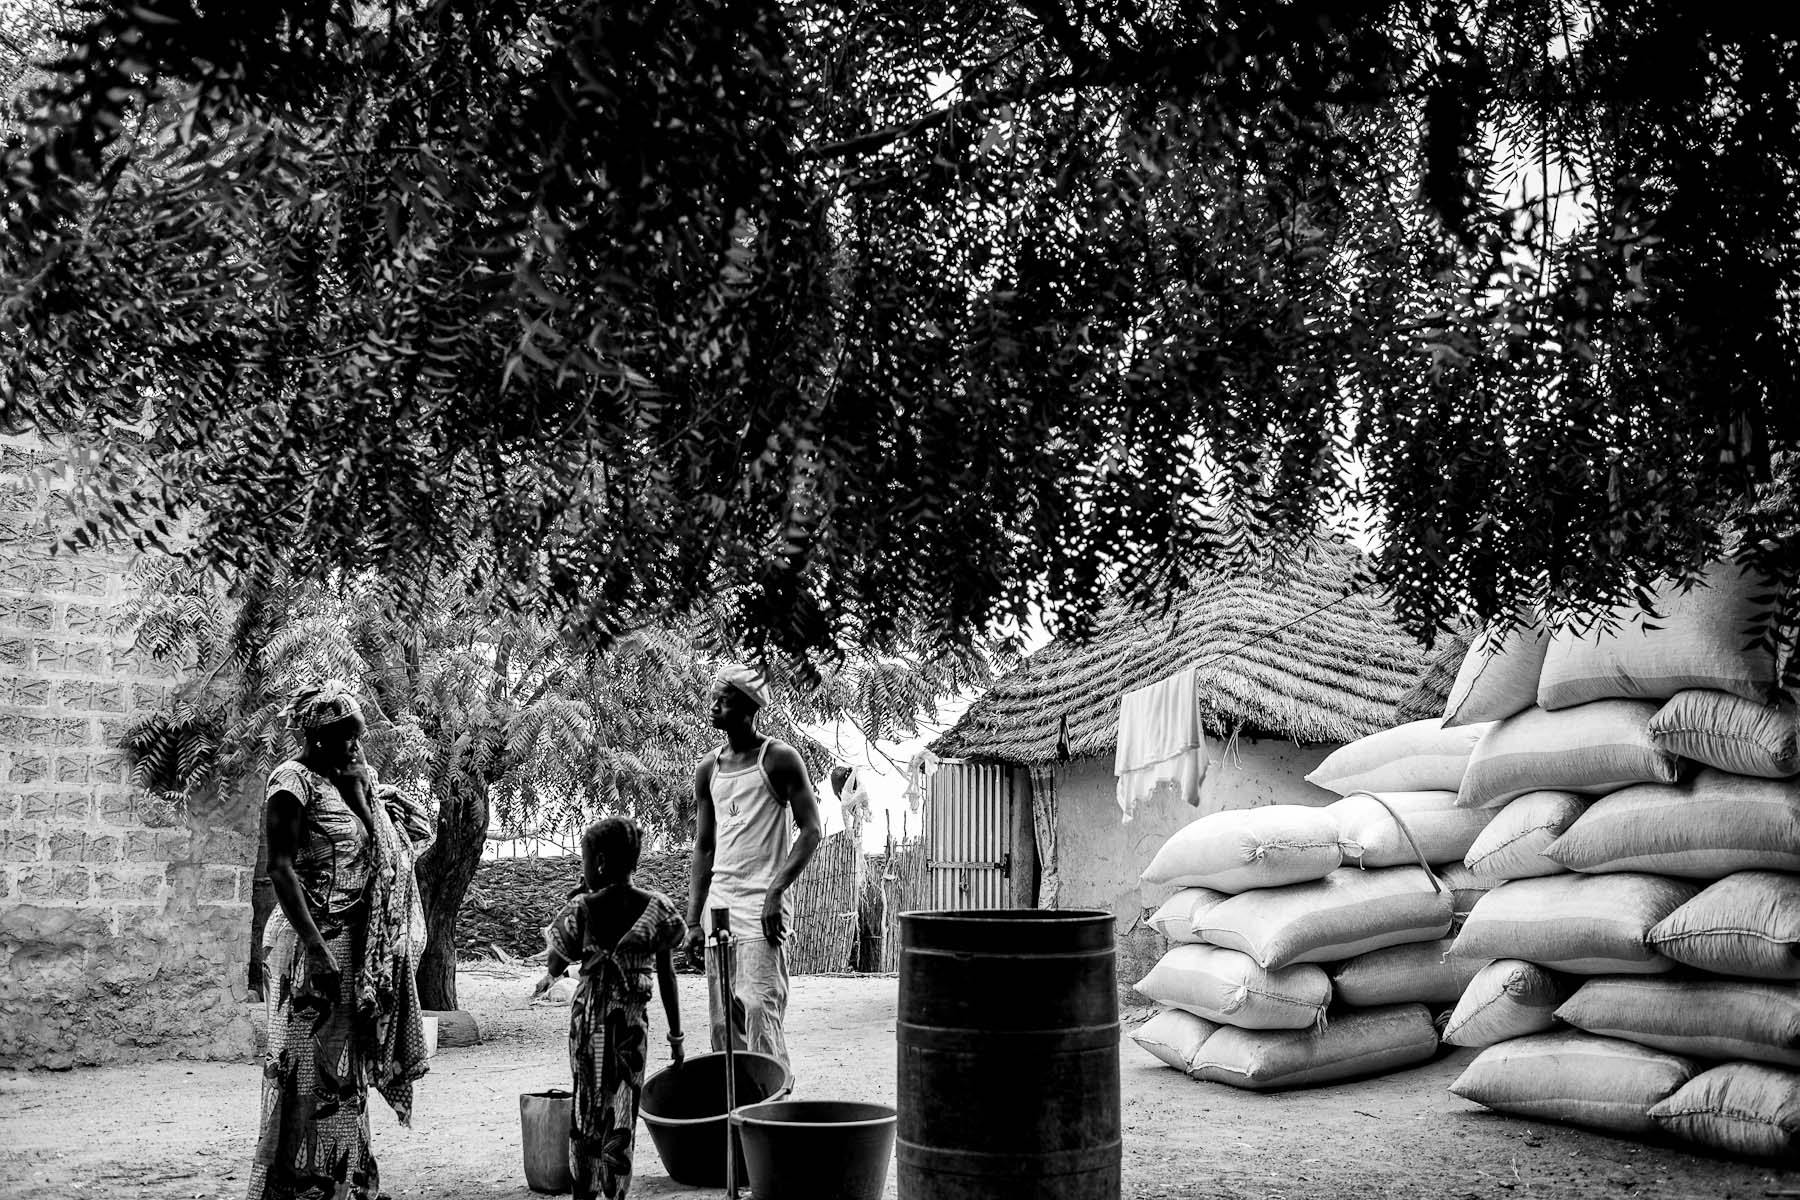 Family members of a local peanut producer who rents the land from the African Oil Corporation company stand in the courtyard of their home in Lamboki, Kaolac region, Senegal. Until 2013, the African National Oil Corporation was leasing the acquired land to other people who were using it to grow crops for their small scale production. Although conditions of the lease were not officially confirmed, some villagers are claiming that the lease annually provided the company with almost as much money as they had paid the villagers for their land. The practice of leasing the land has ended in 2013 when the company itself started using the land for peanut plantations.